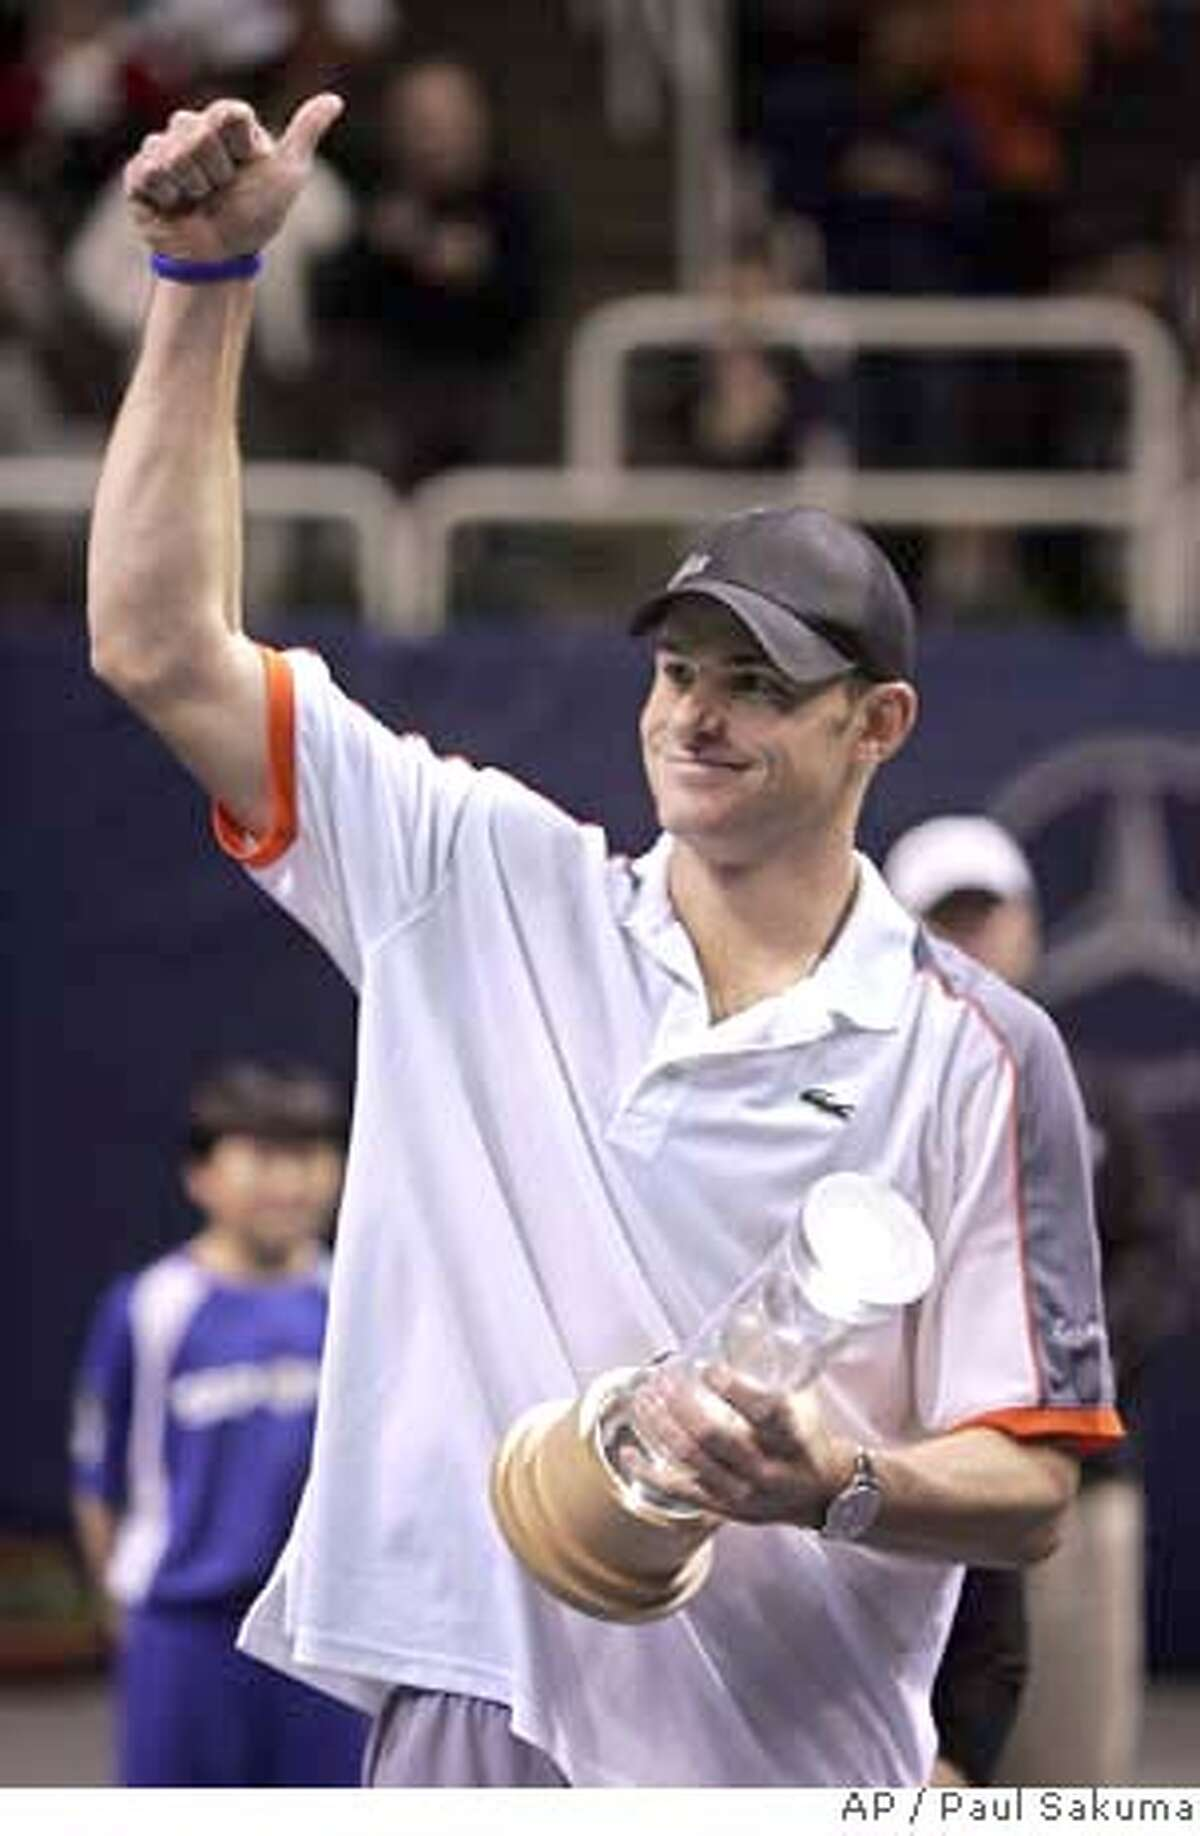 Andy Roddick gives thumbs up as he holds the winner's trophy after defeating Radek Stepanek, of the Czech Republic, 6-4, 7-5 in finals of the SAP Open tennis tournament in San Jose, Calif., Sunday, Feb. 24, 2008. (AP Photo/Paul Sakuma) EFE OUT